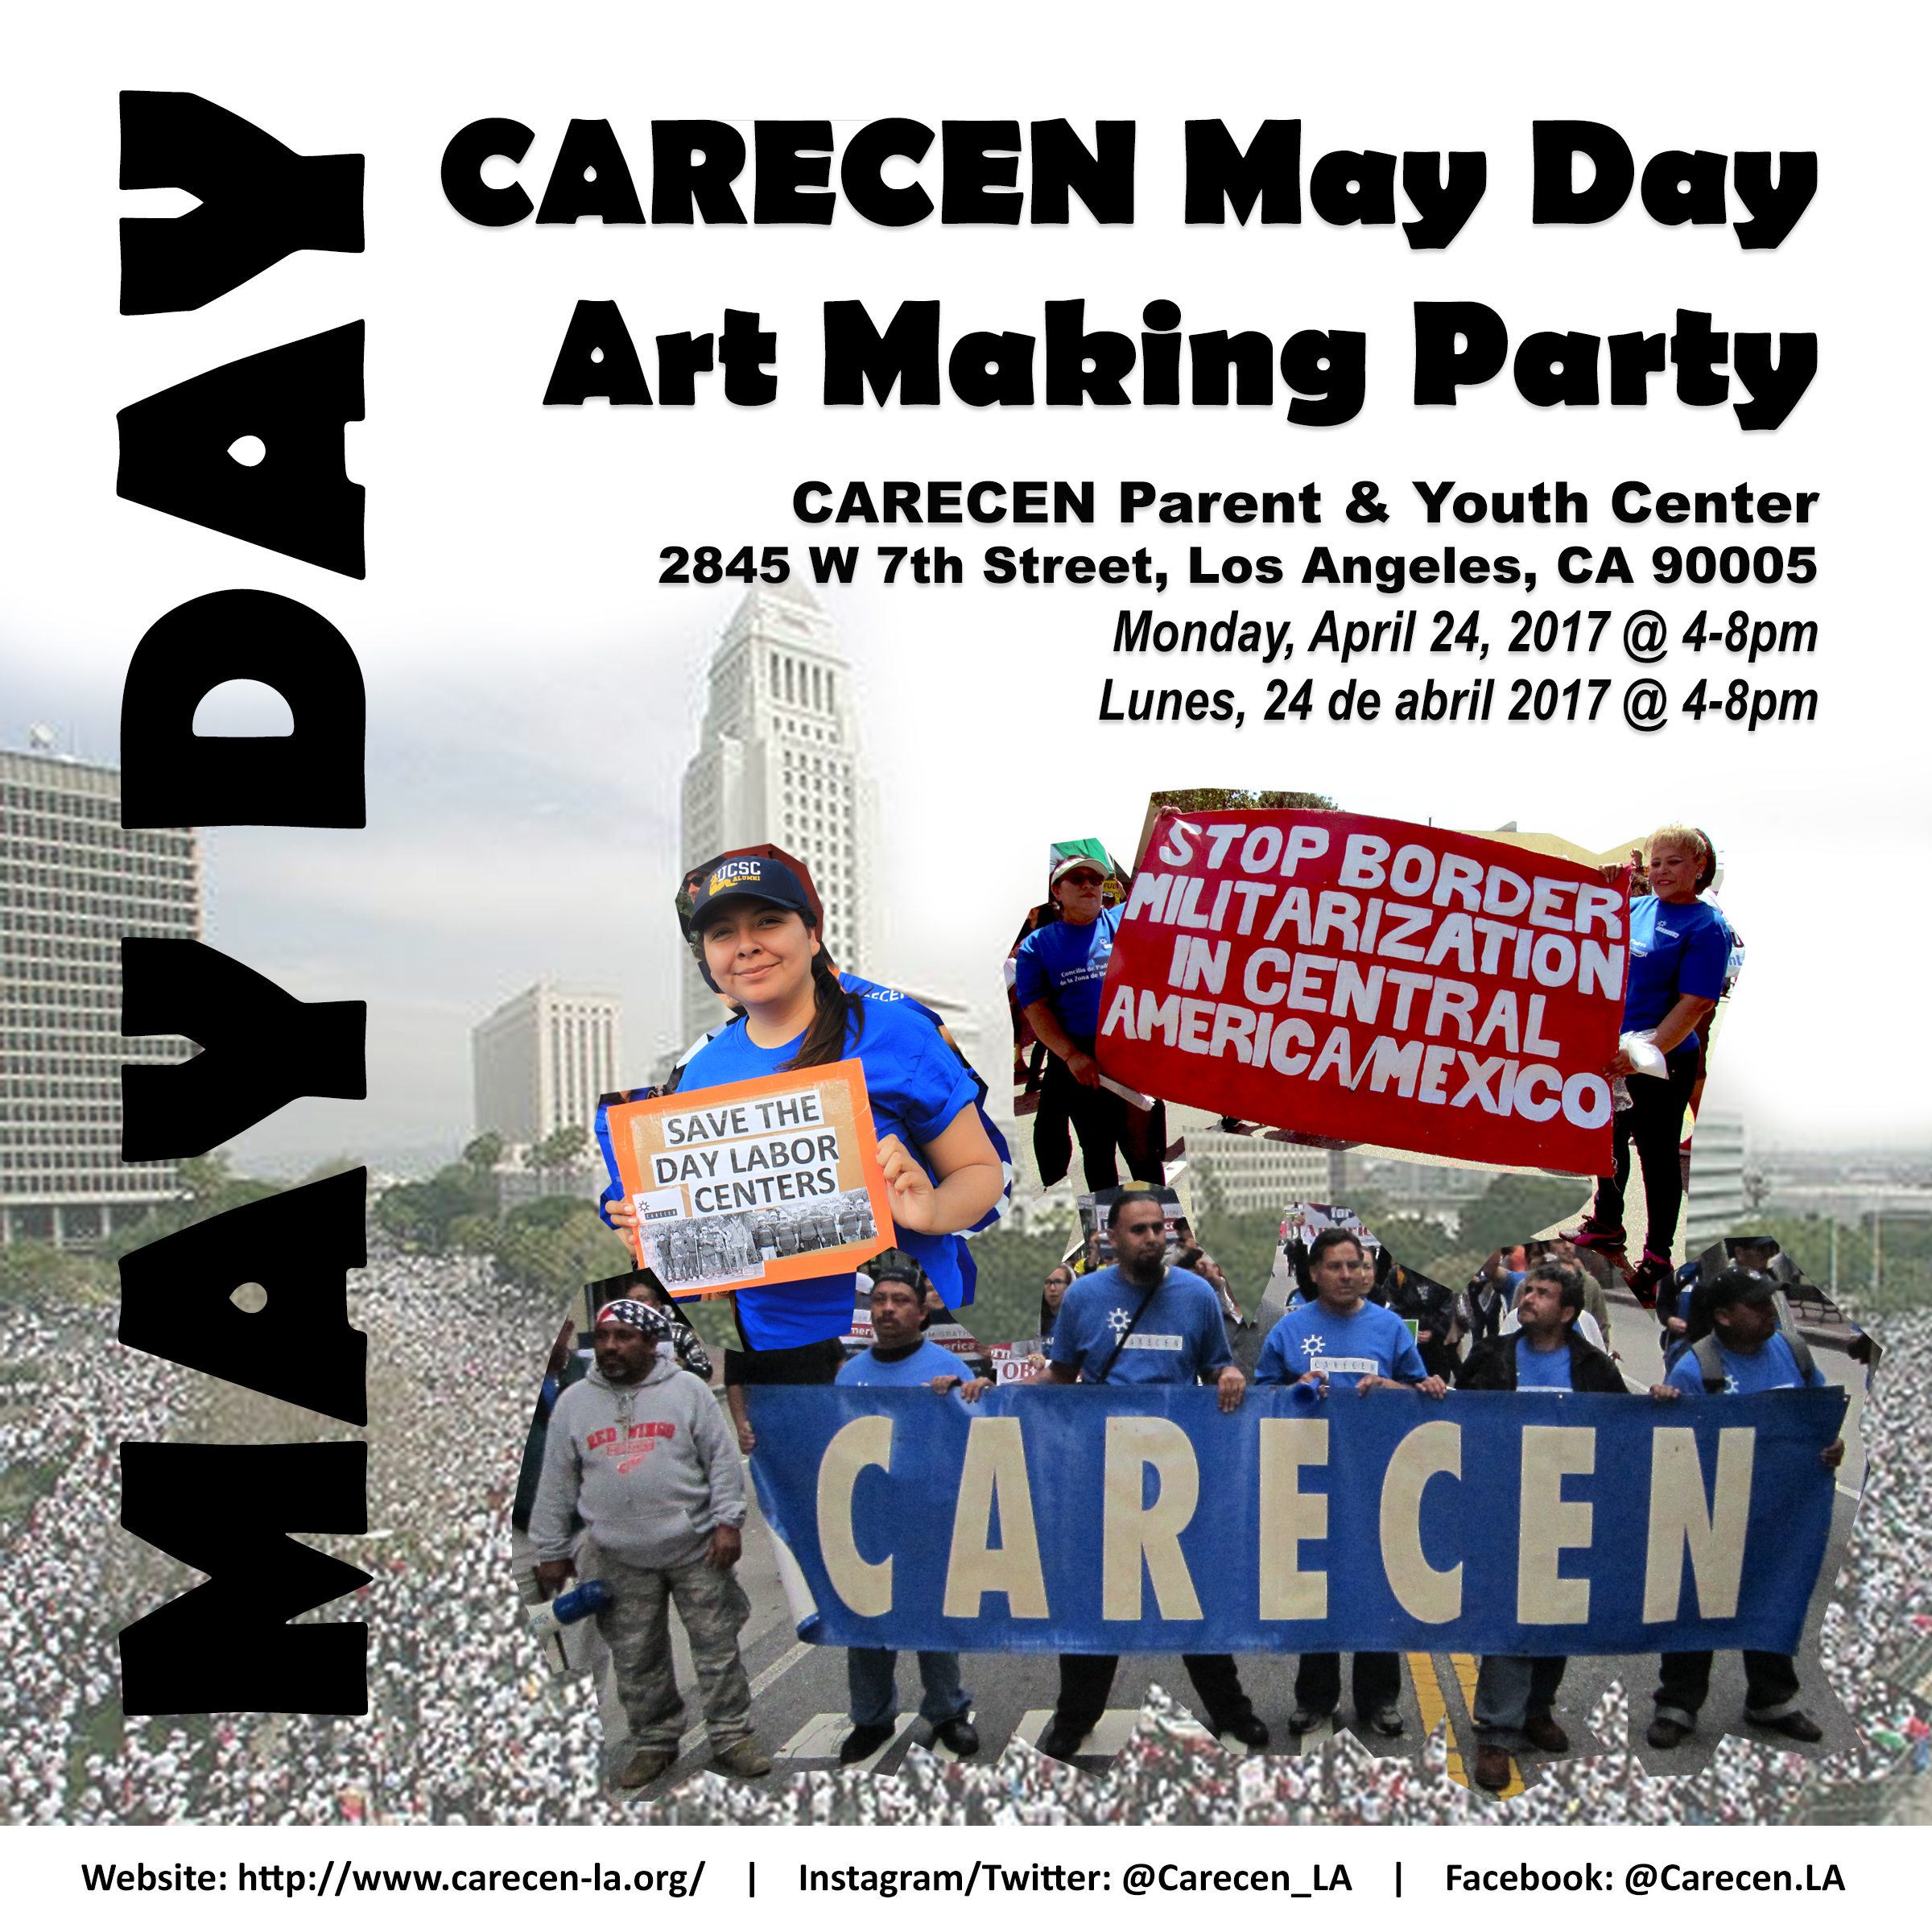 CARECEN_Art_Making_Flyer.jpg